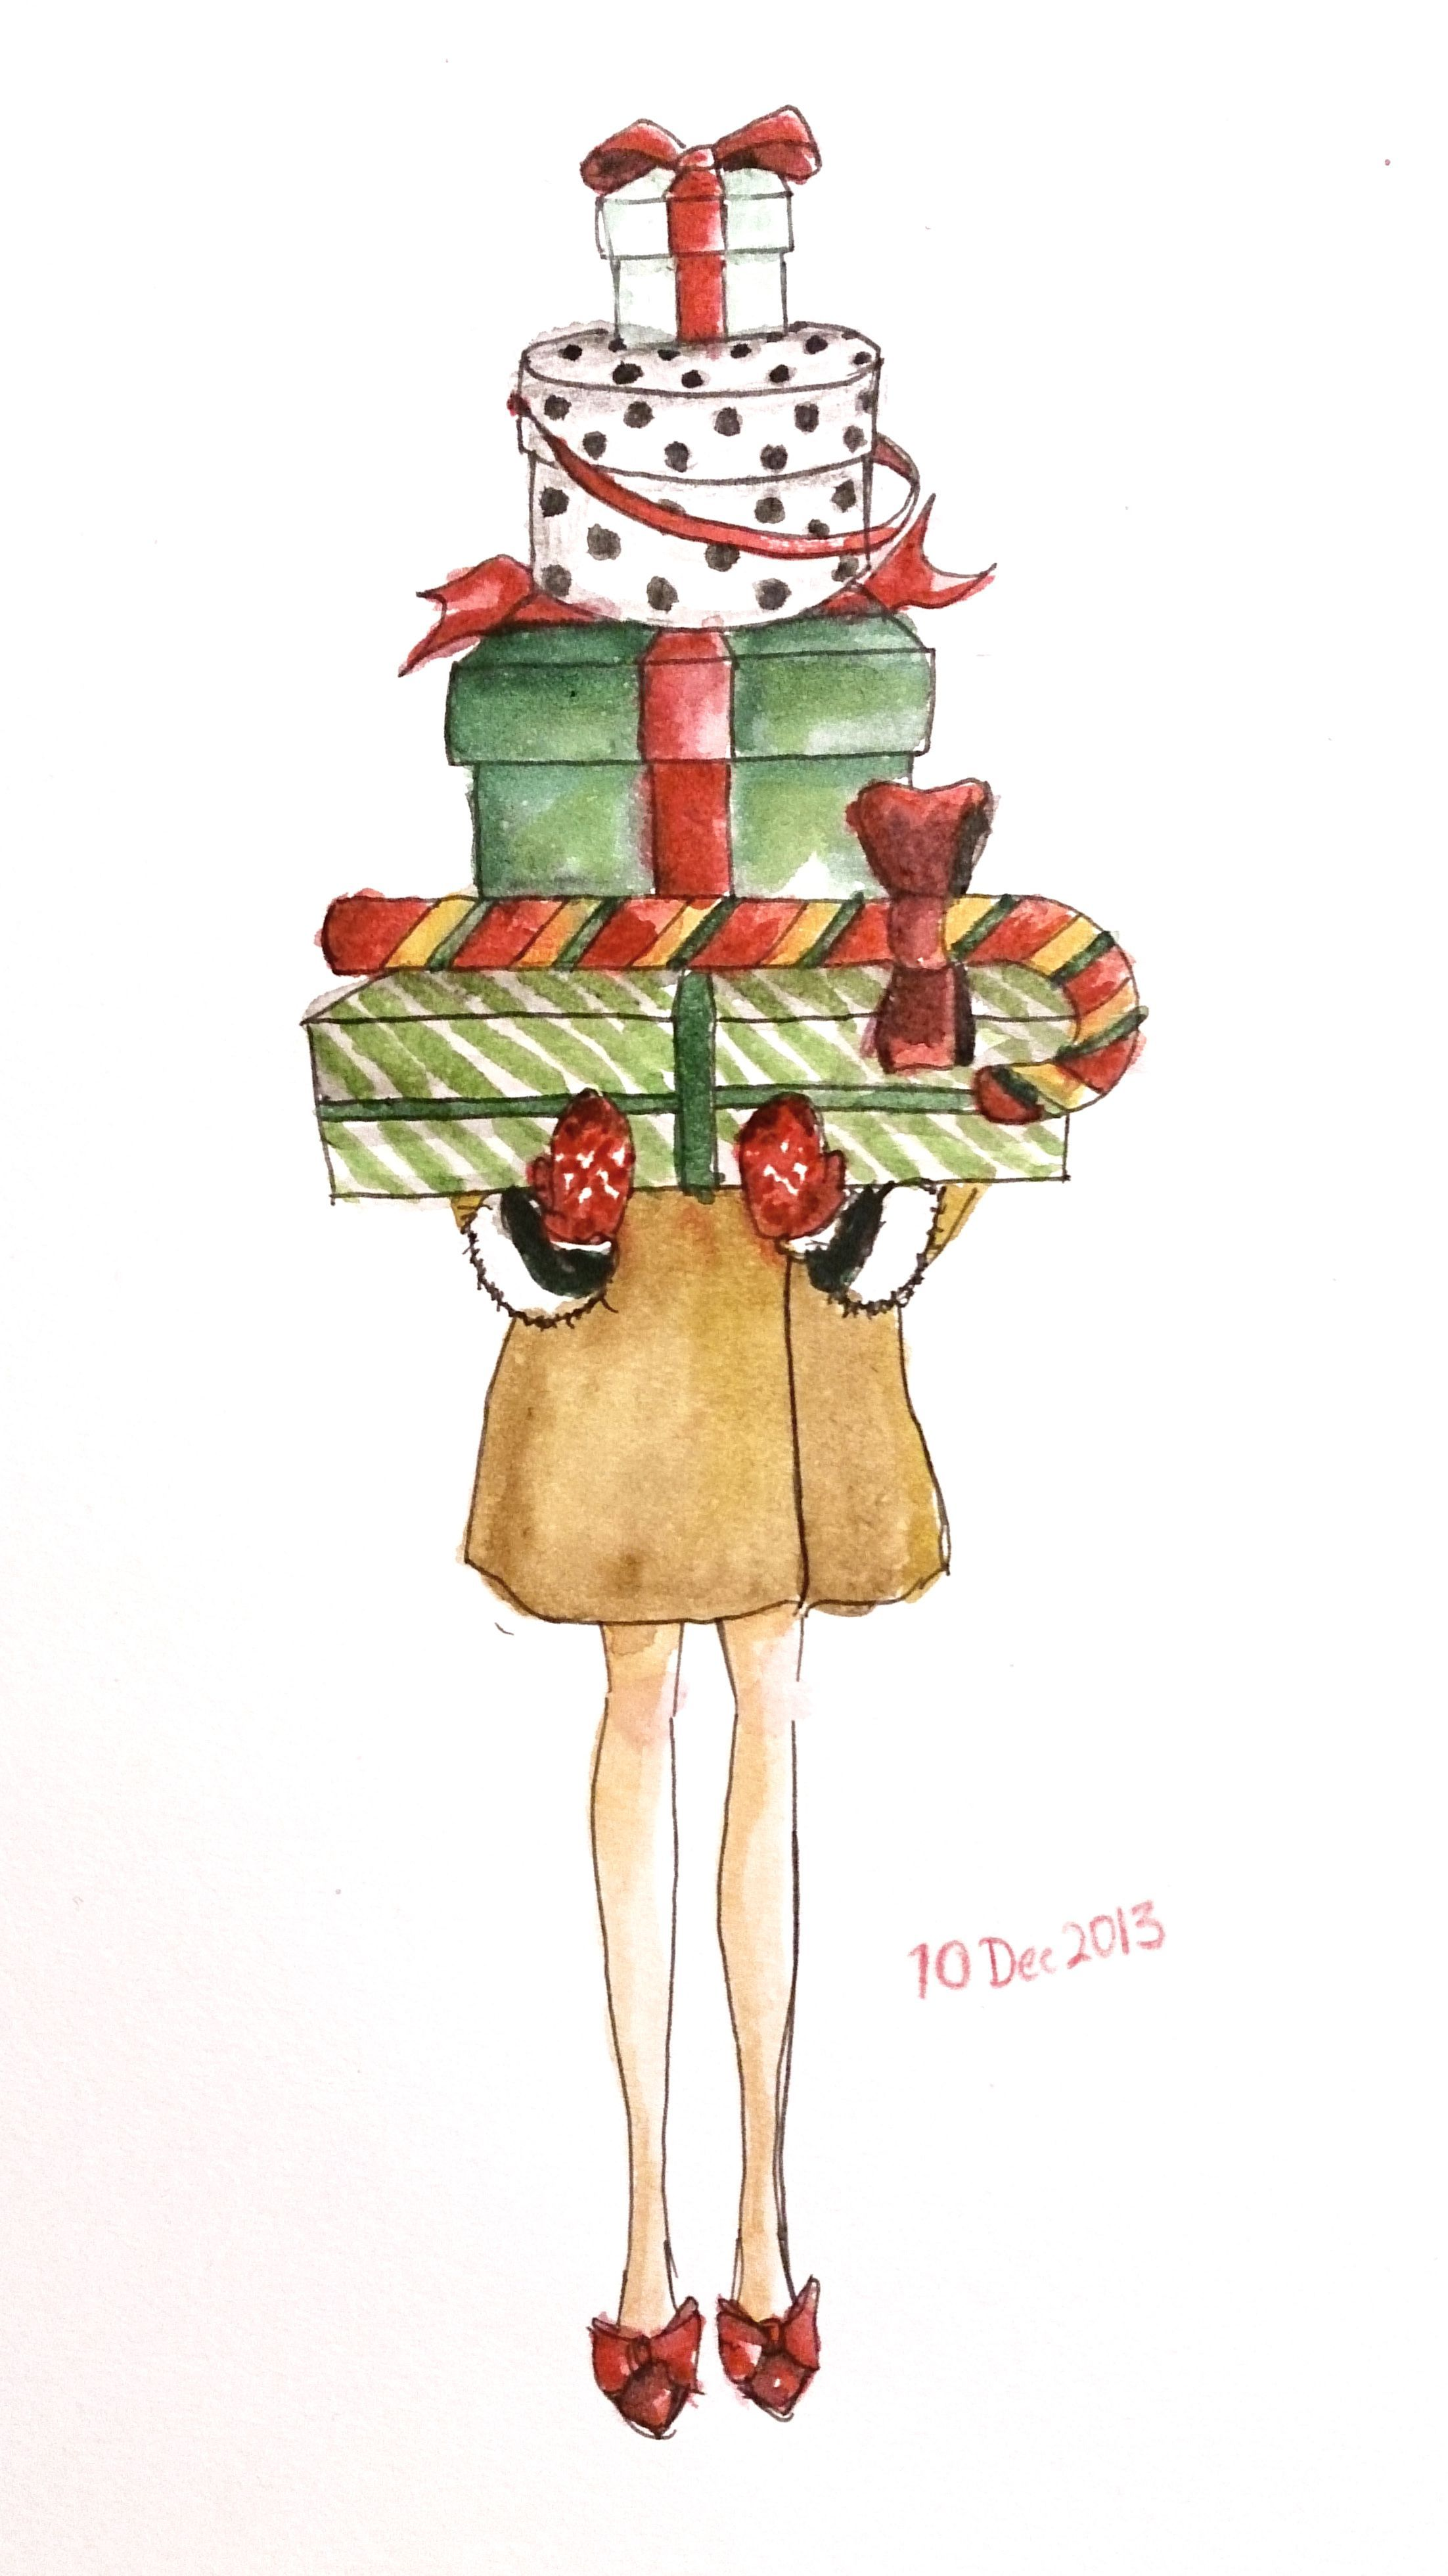 Christmas Love Dec 1 2020 Get ready for CHRISTMAS! Watercolor 1 0 d e c 1 3 IG :LingyiCheung